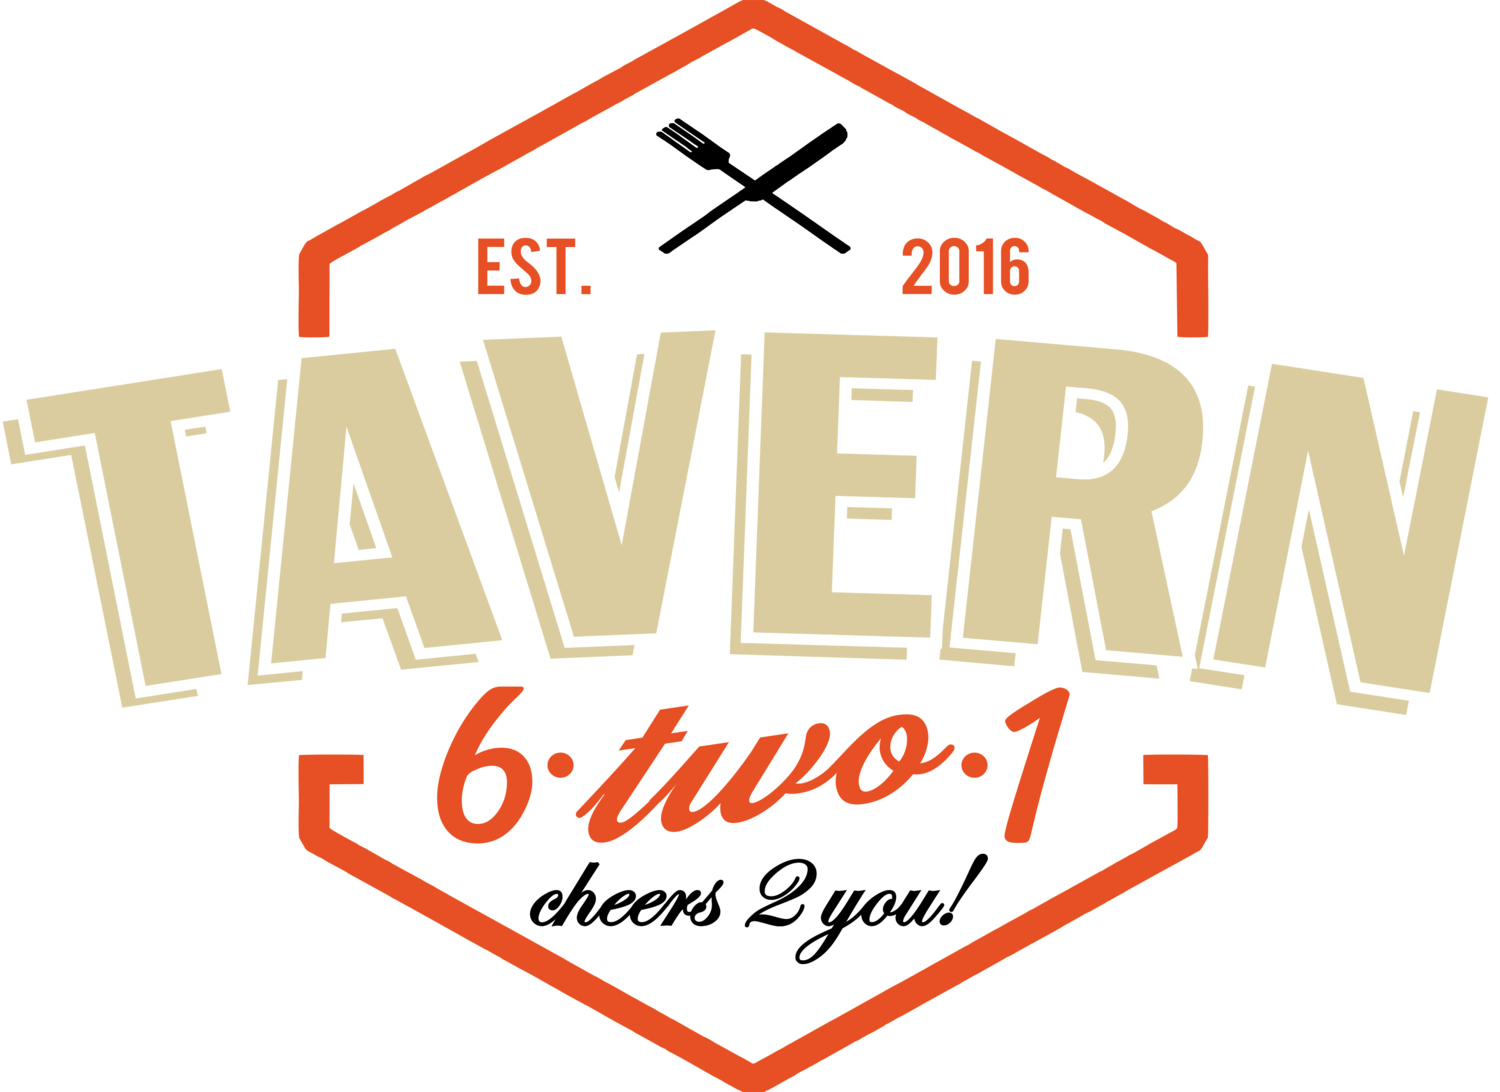 Tavern 6 Two 1